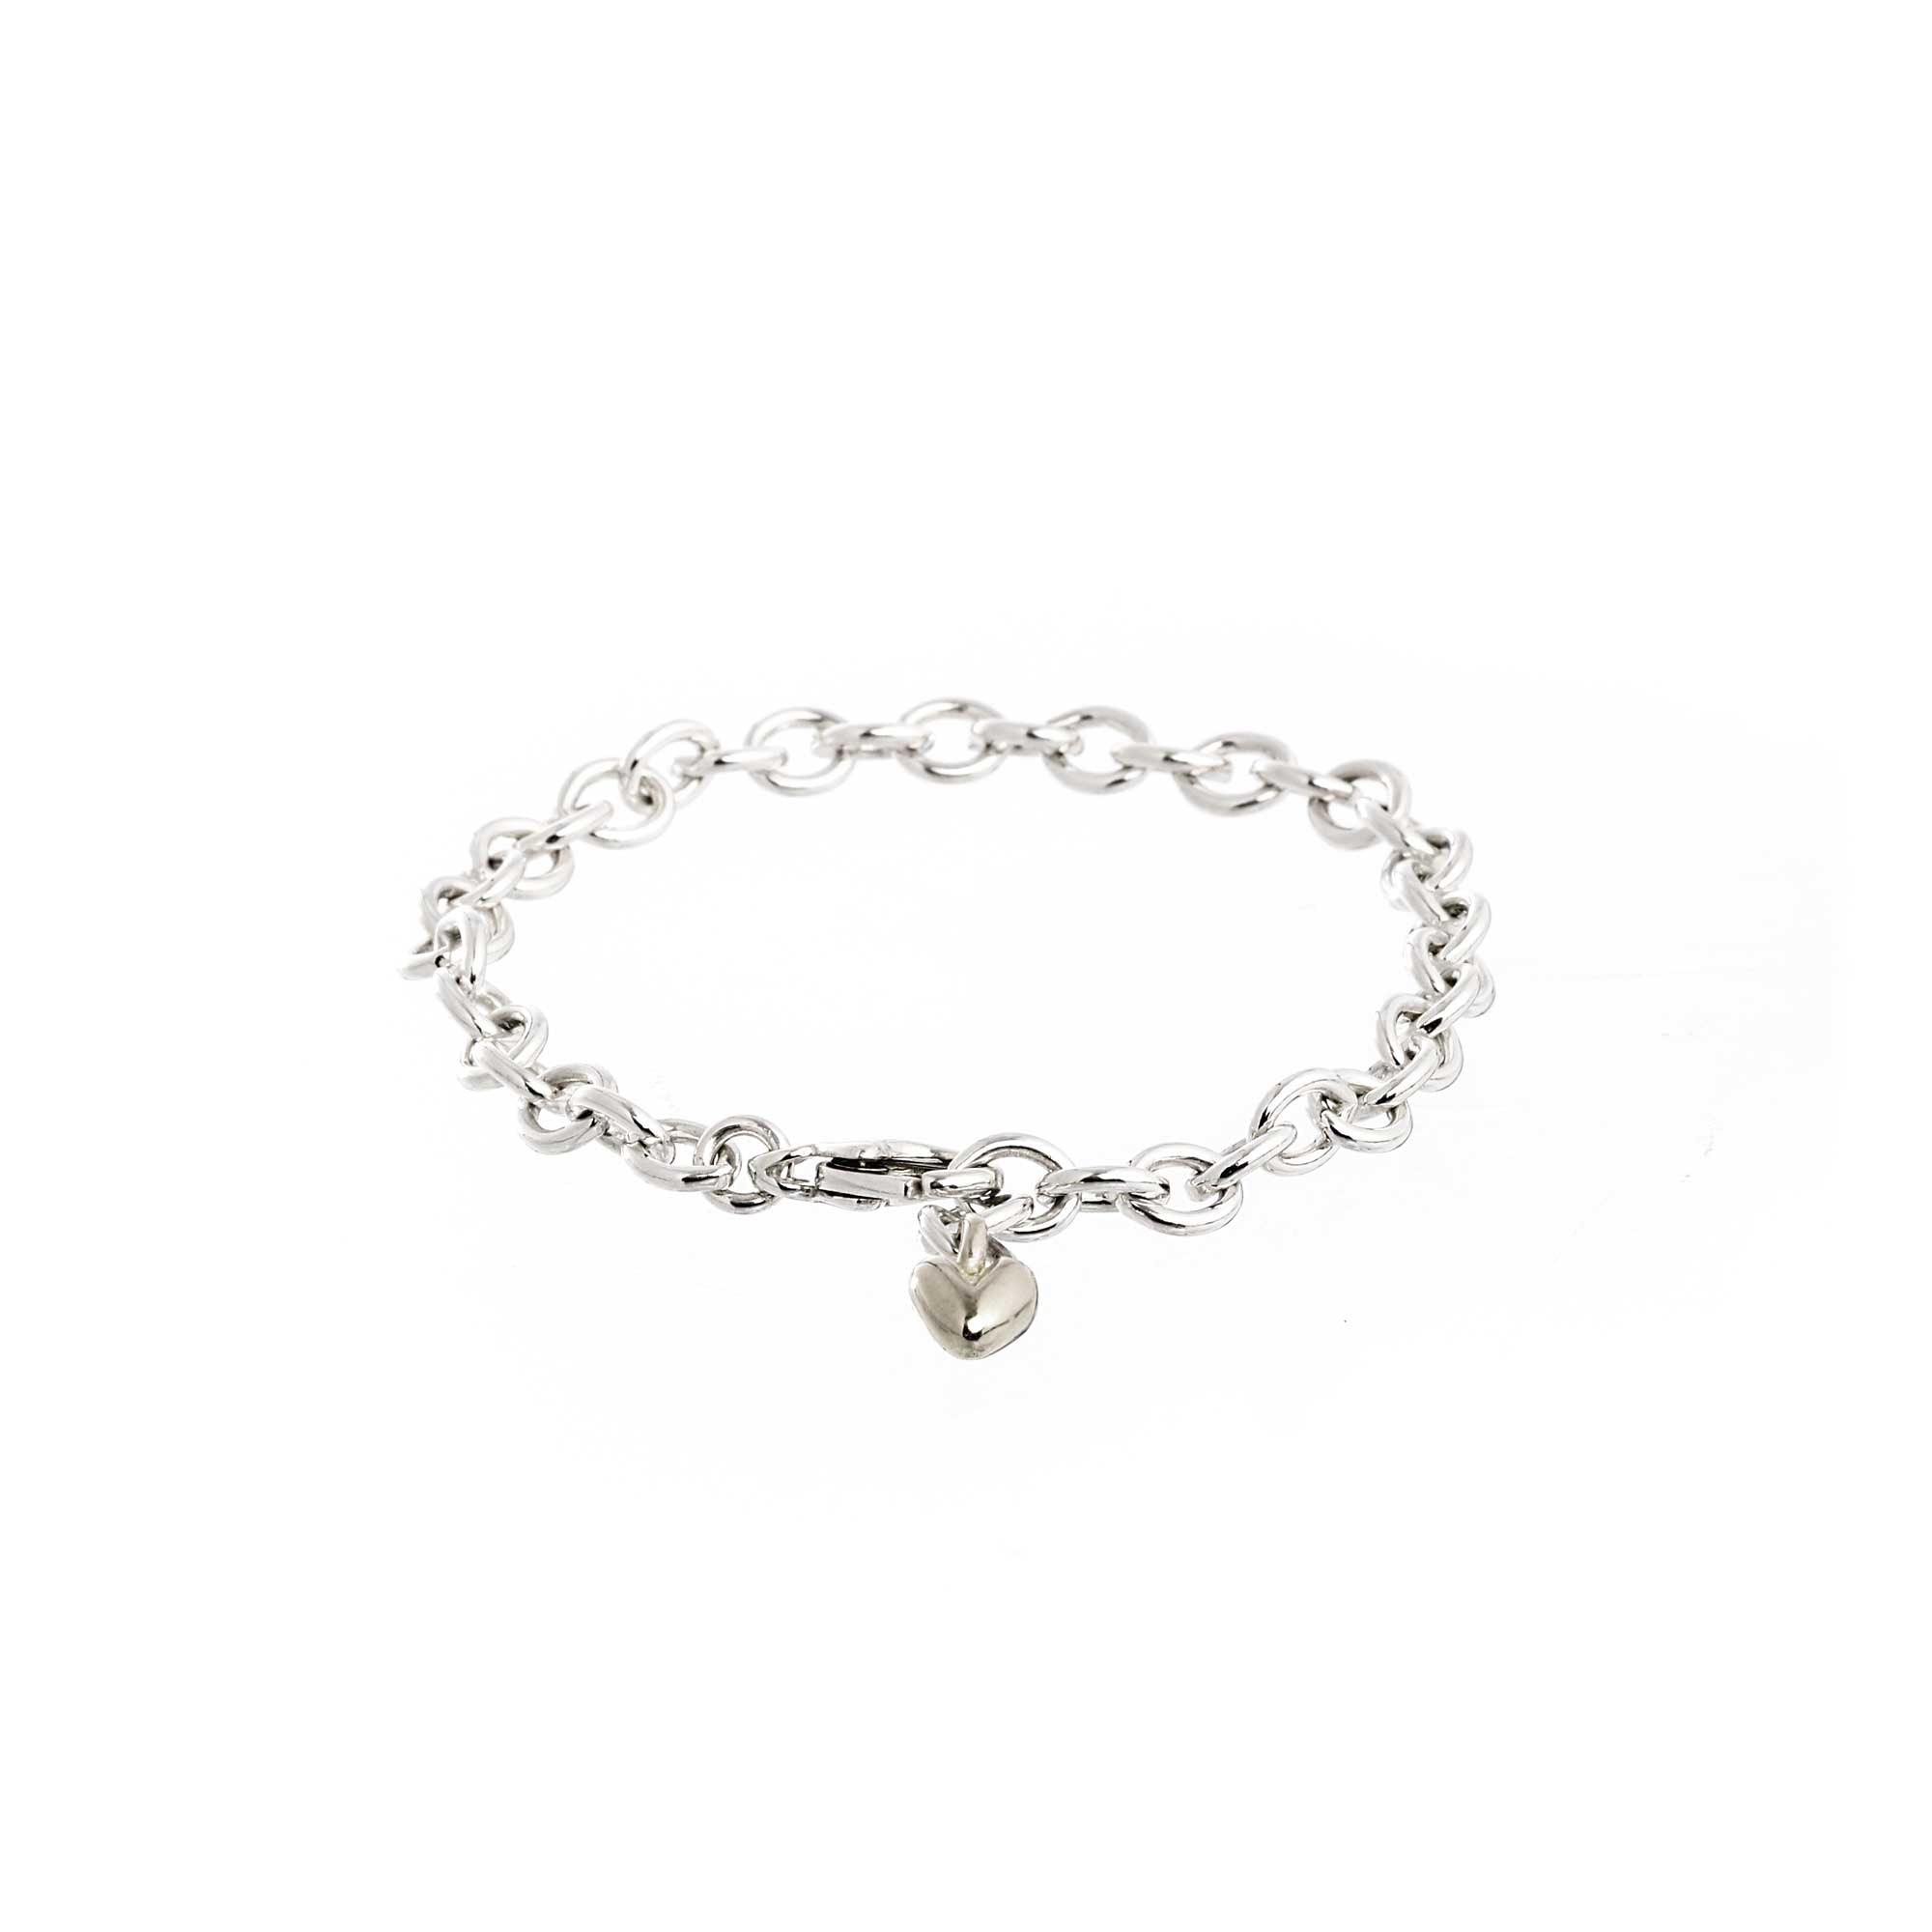 Mini Lifetime Silver Heart Charm Bracelet